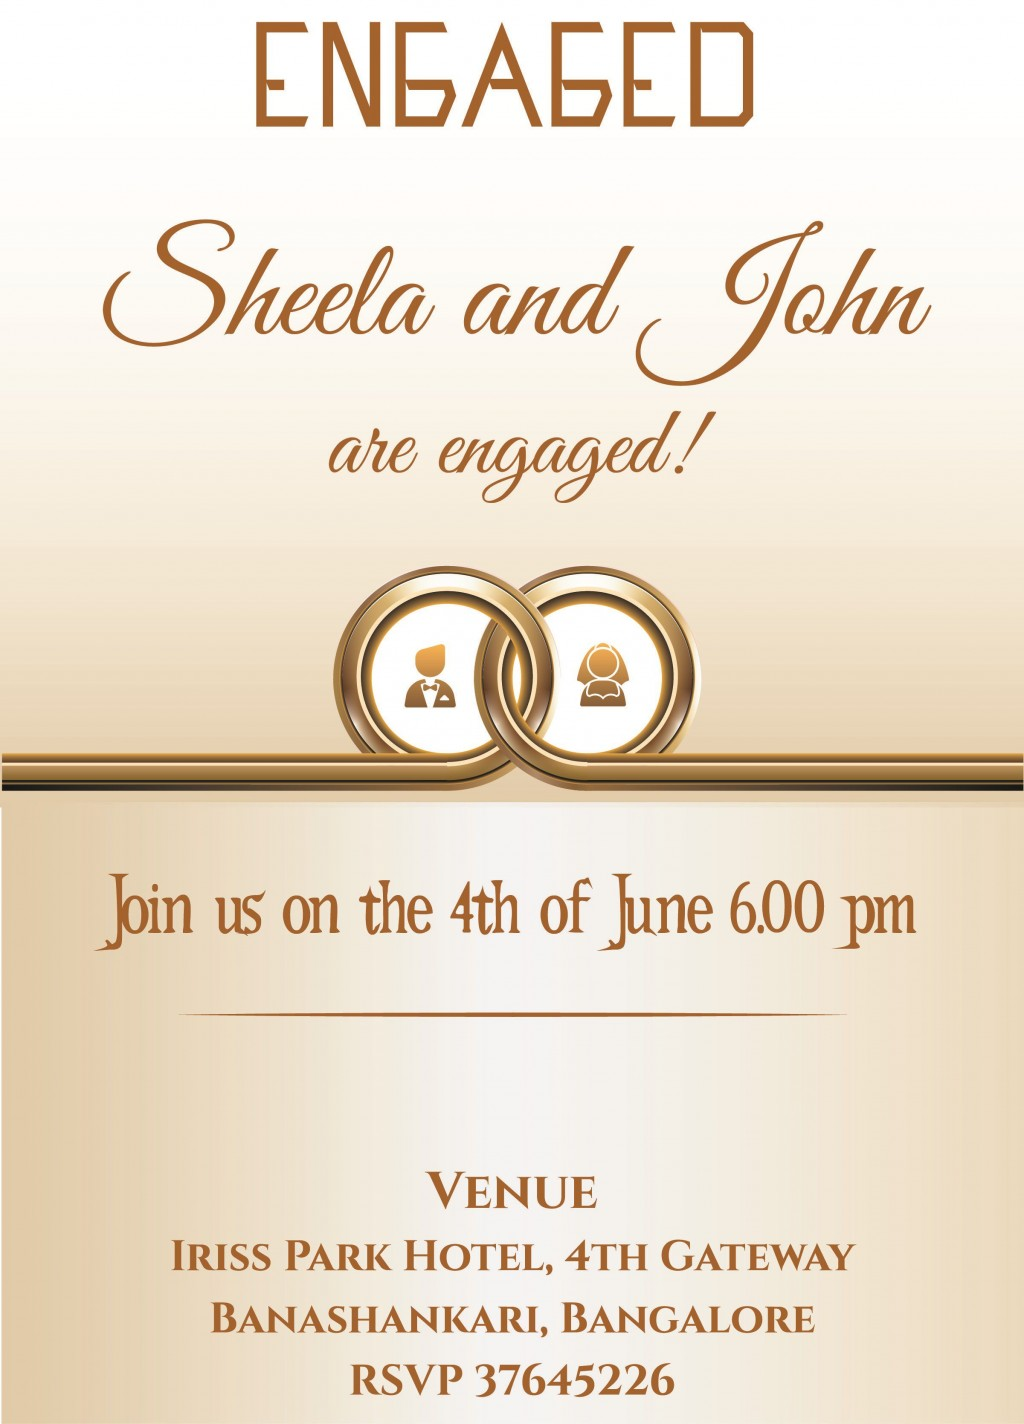 002 Breathtaking Free Engagement Invitation Template Online With Photo Highest Clarity Large